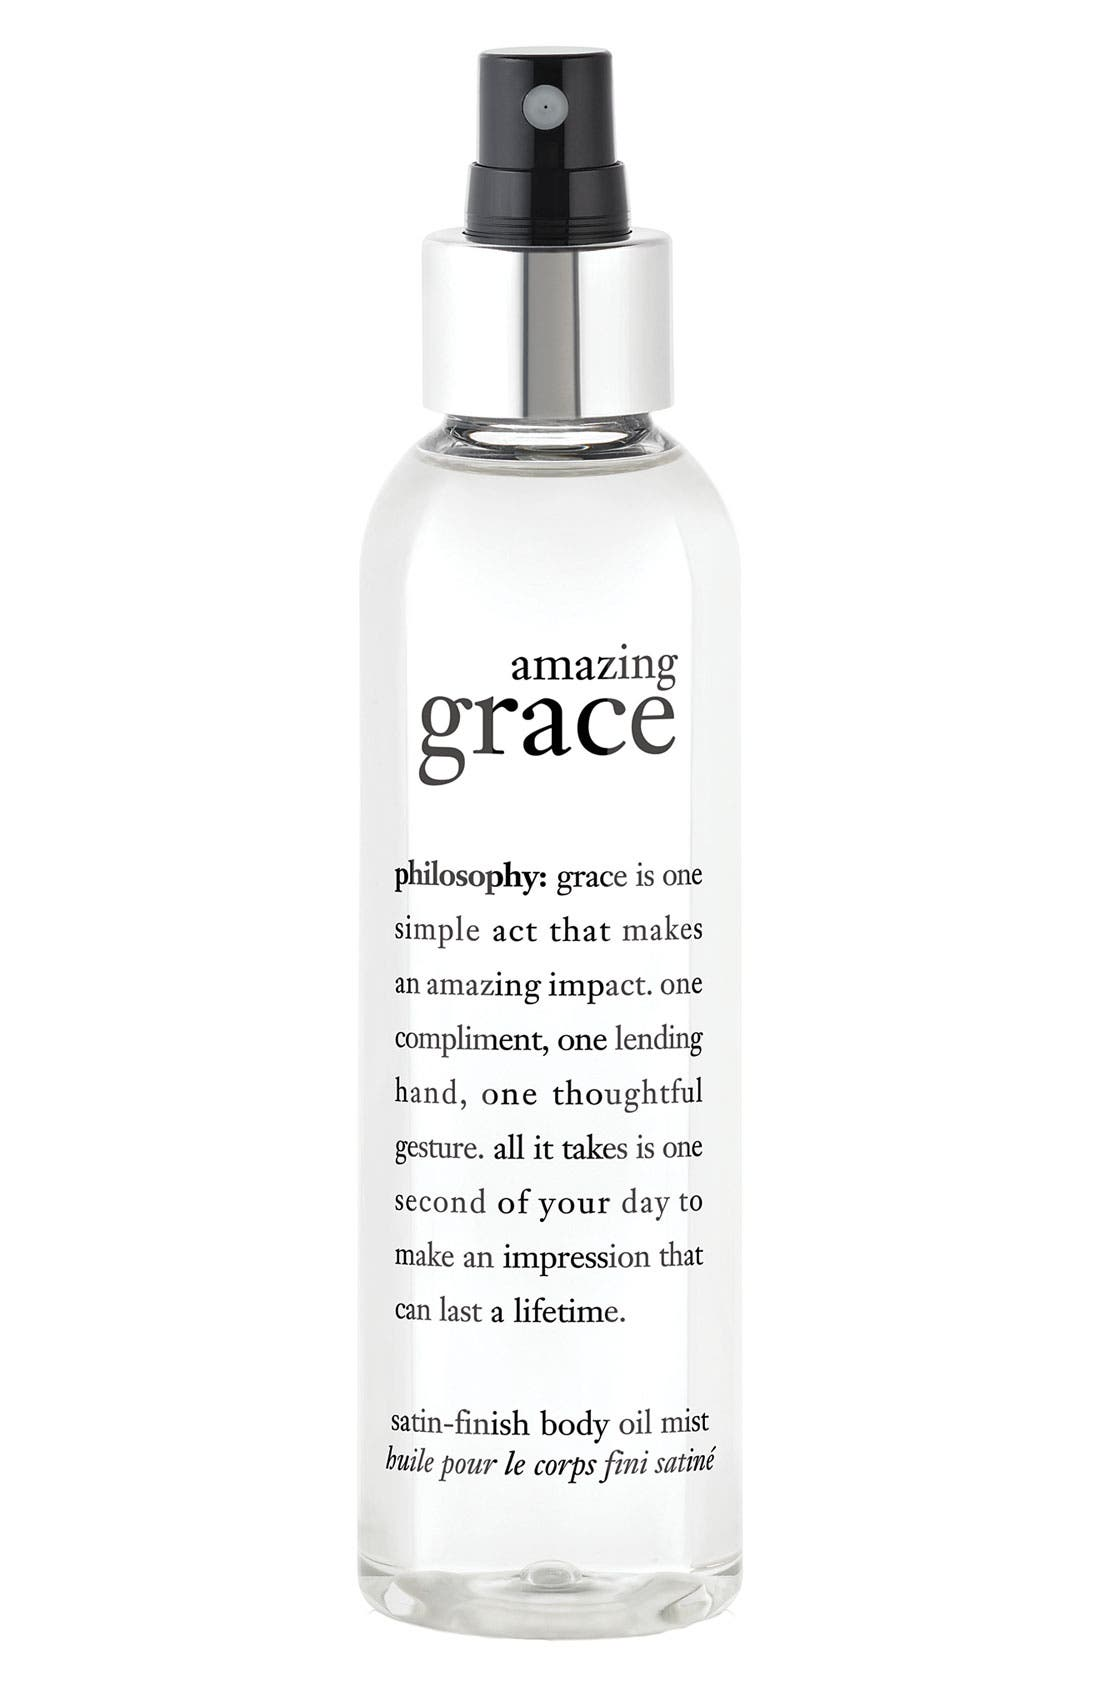 philosophy 'amazing grace' satin-finish body oil mist